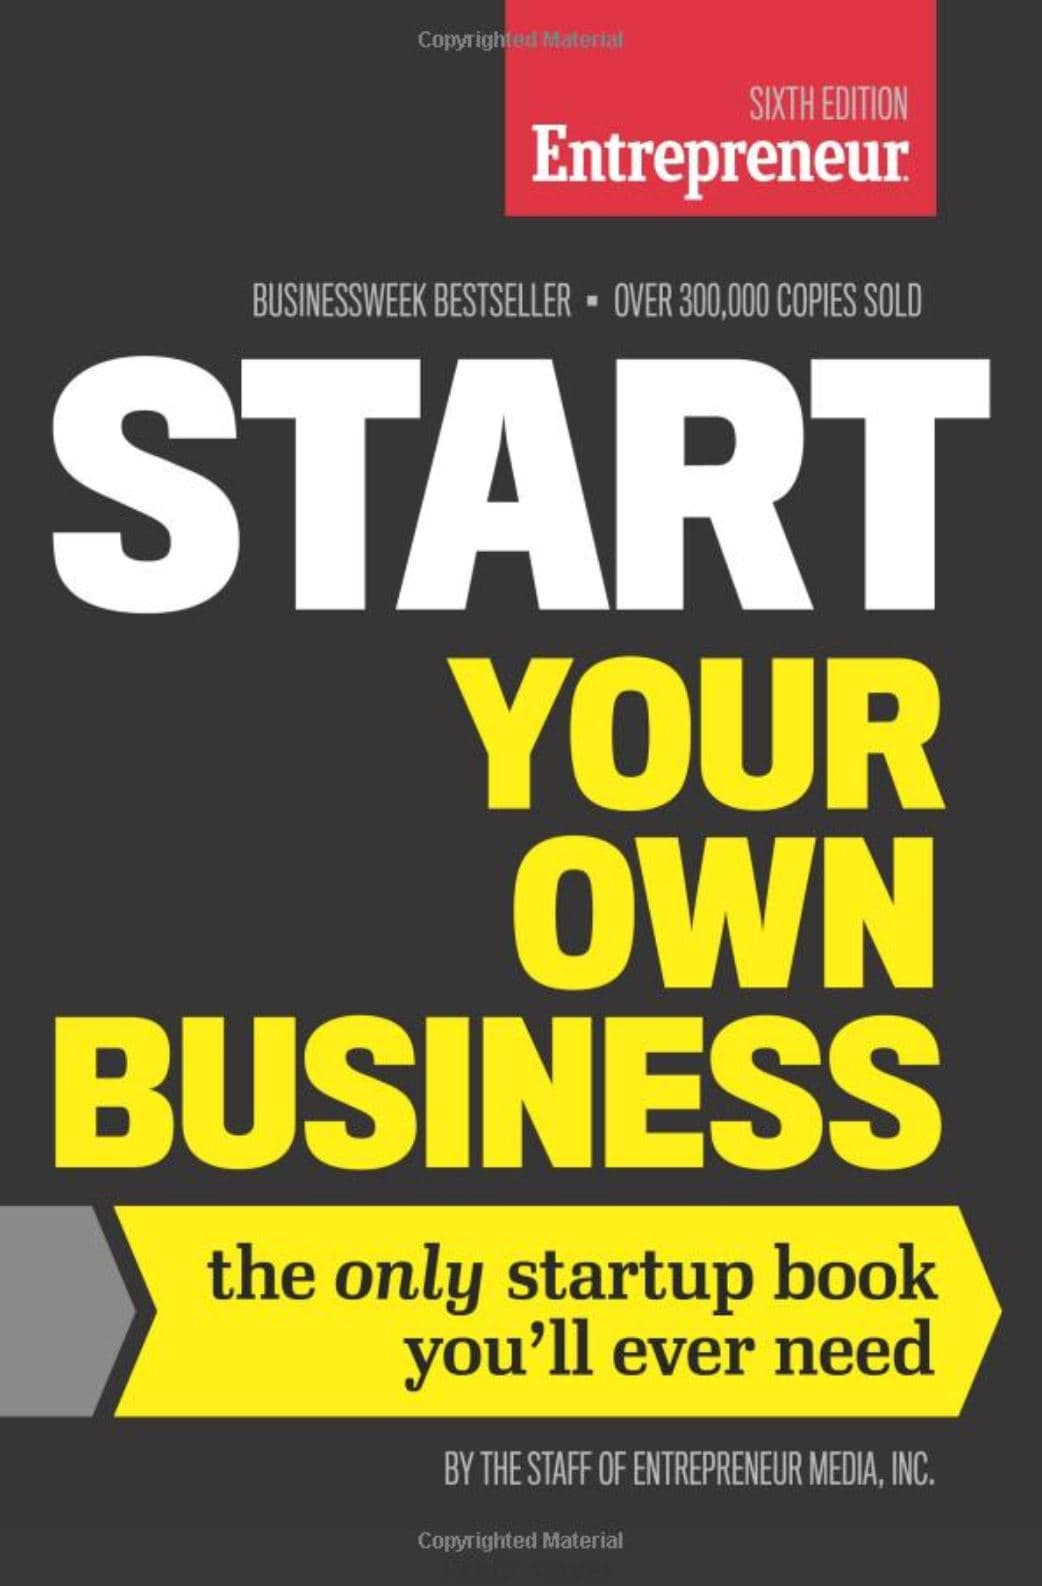 Top Entrepreneur Books